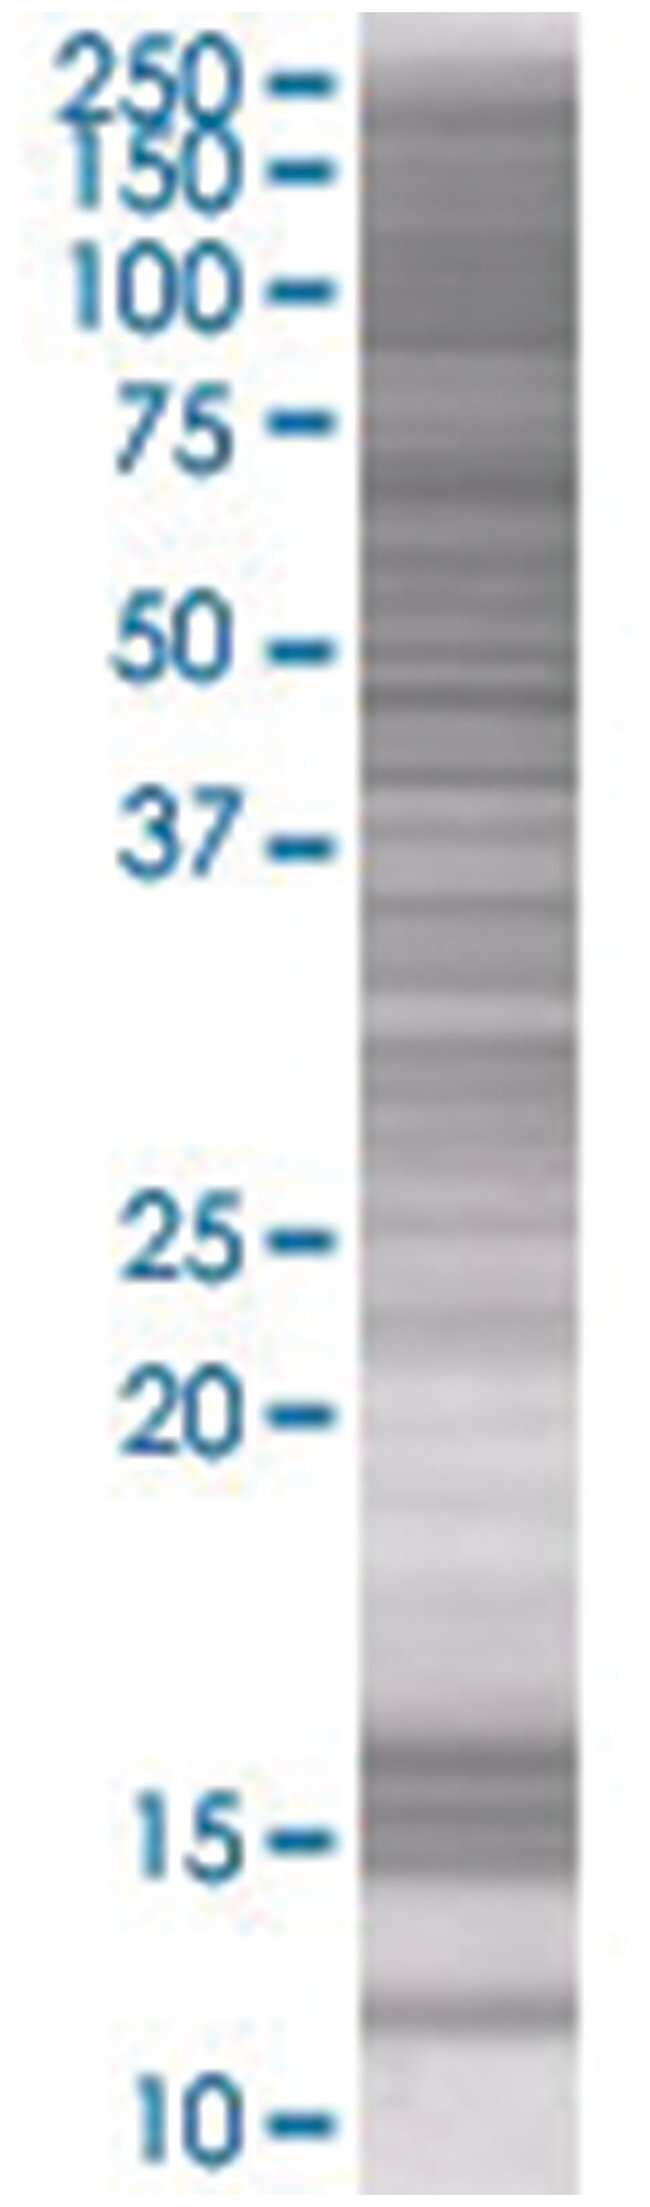 OR3A4 293T Cell Overexpression Lysate (Denatured), Abnova 100µL:Life